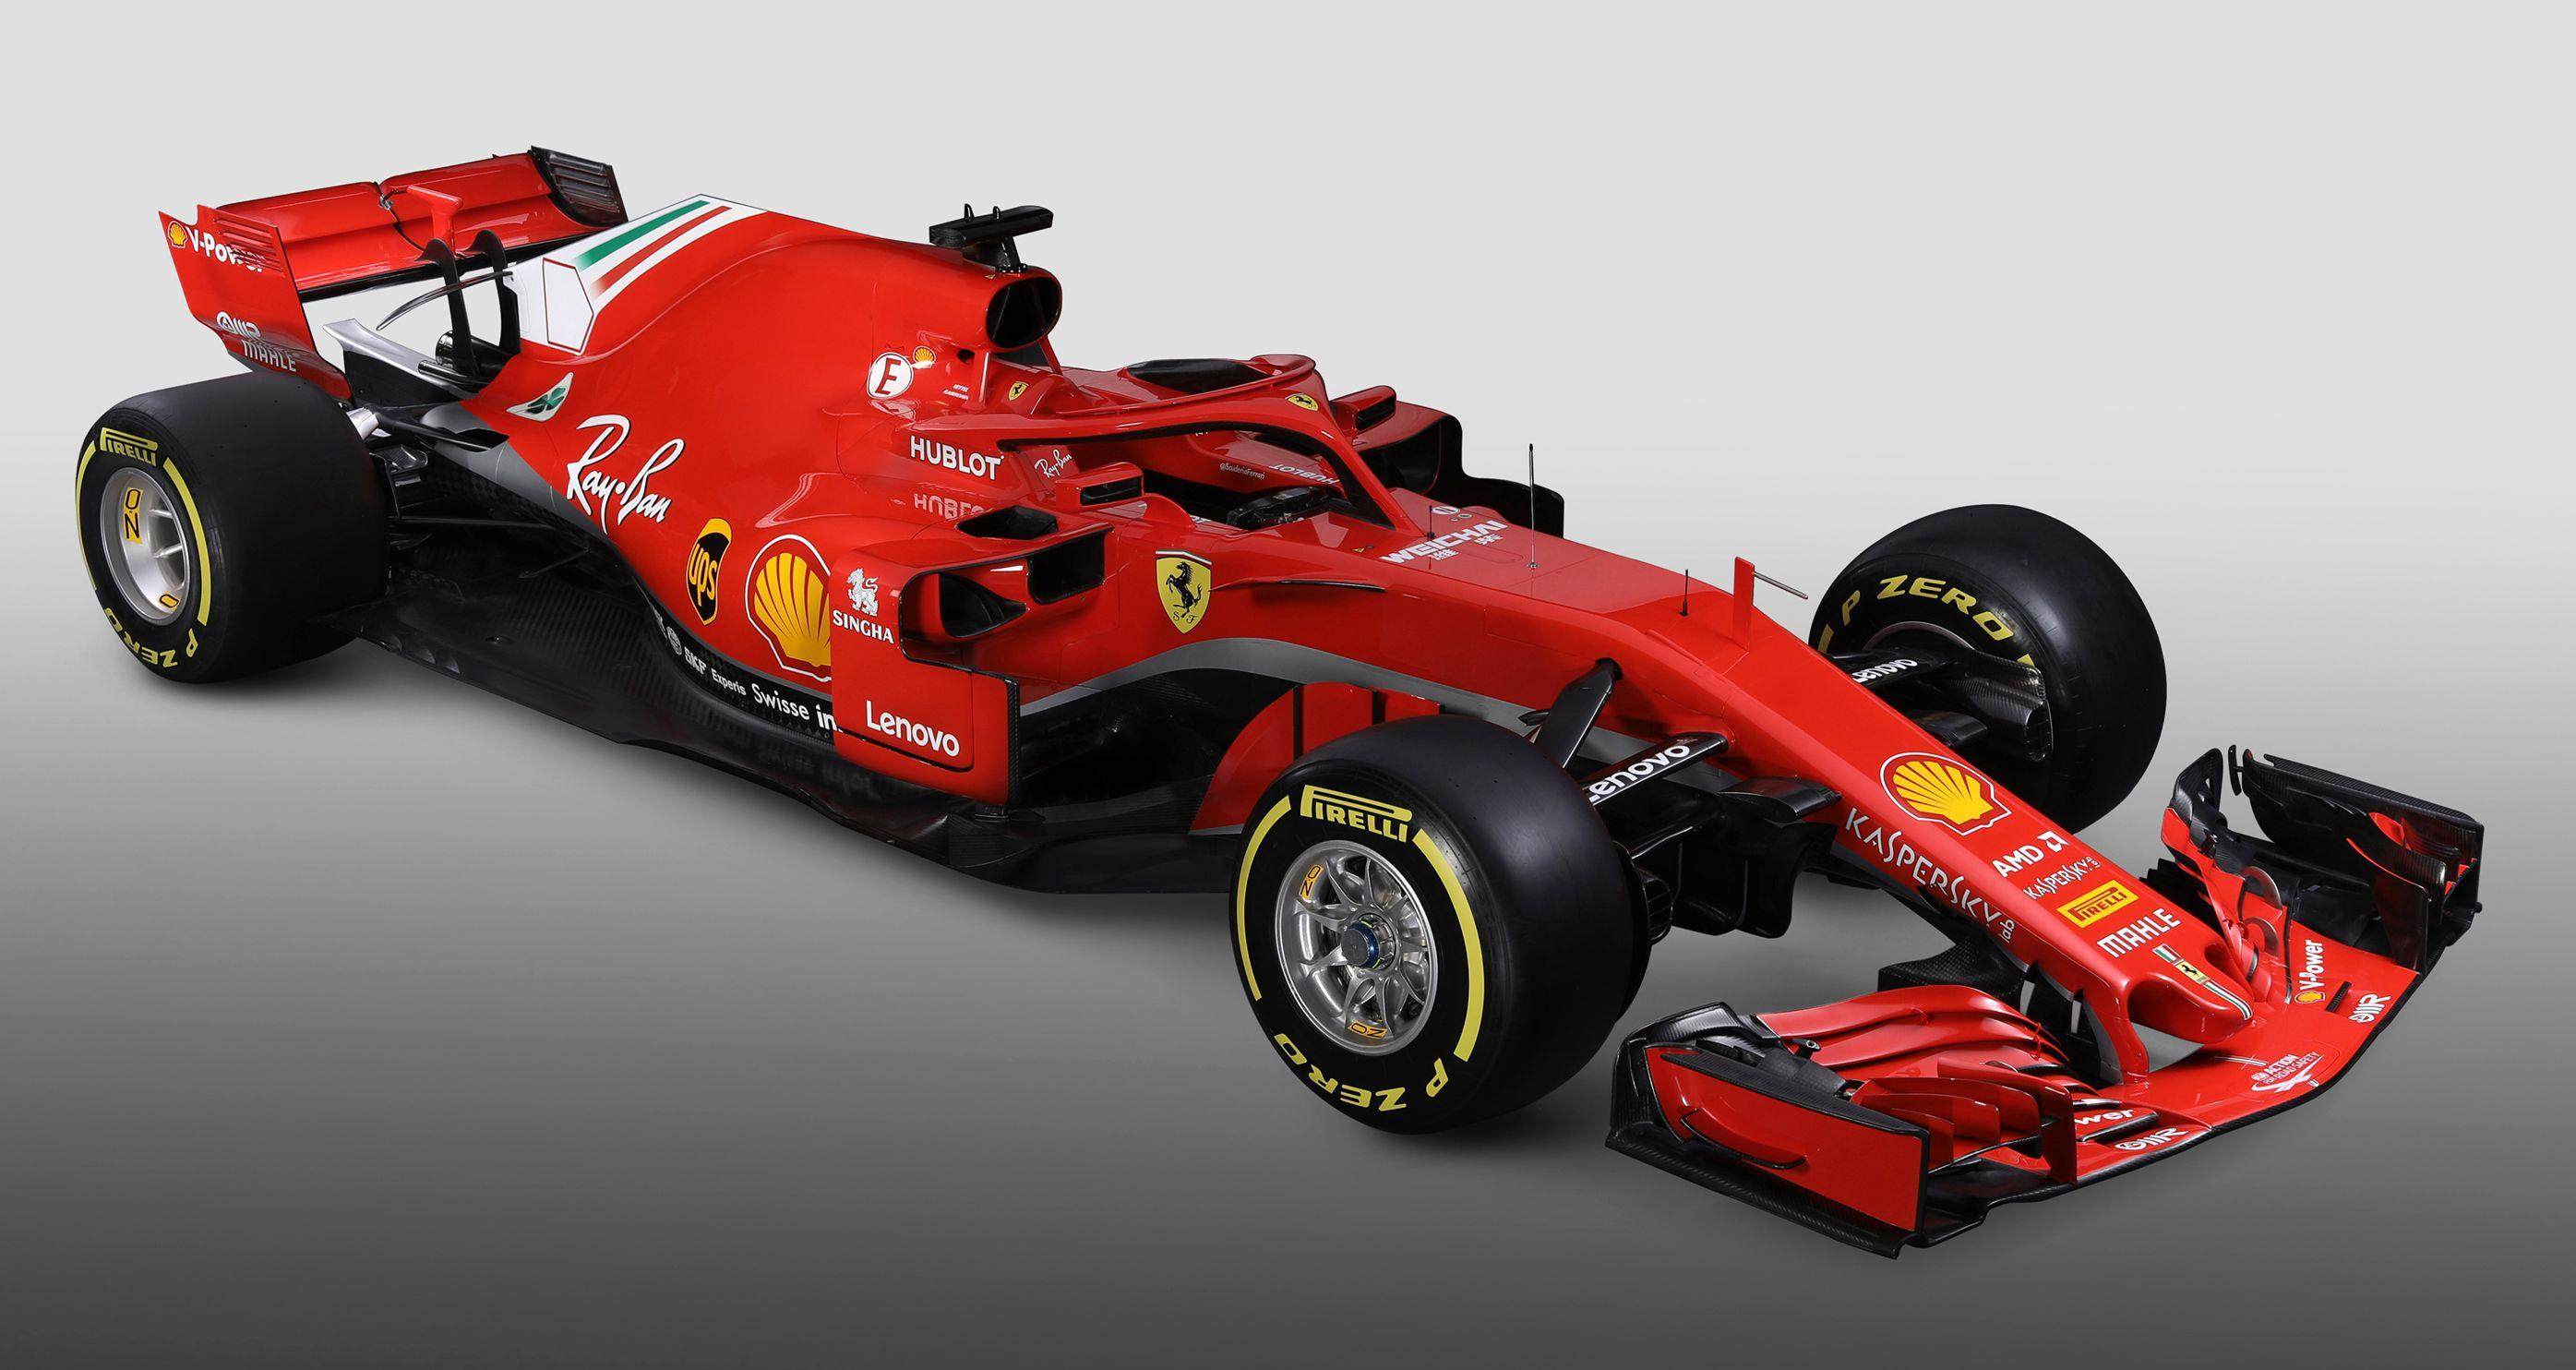 The Halo cockpit protection device will be a major talking point this year